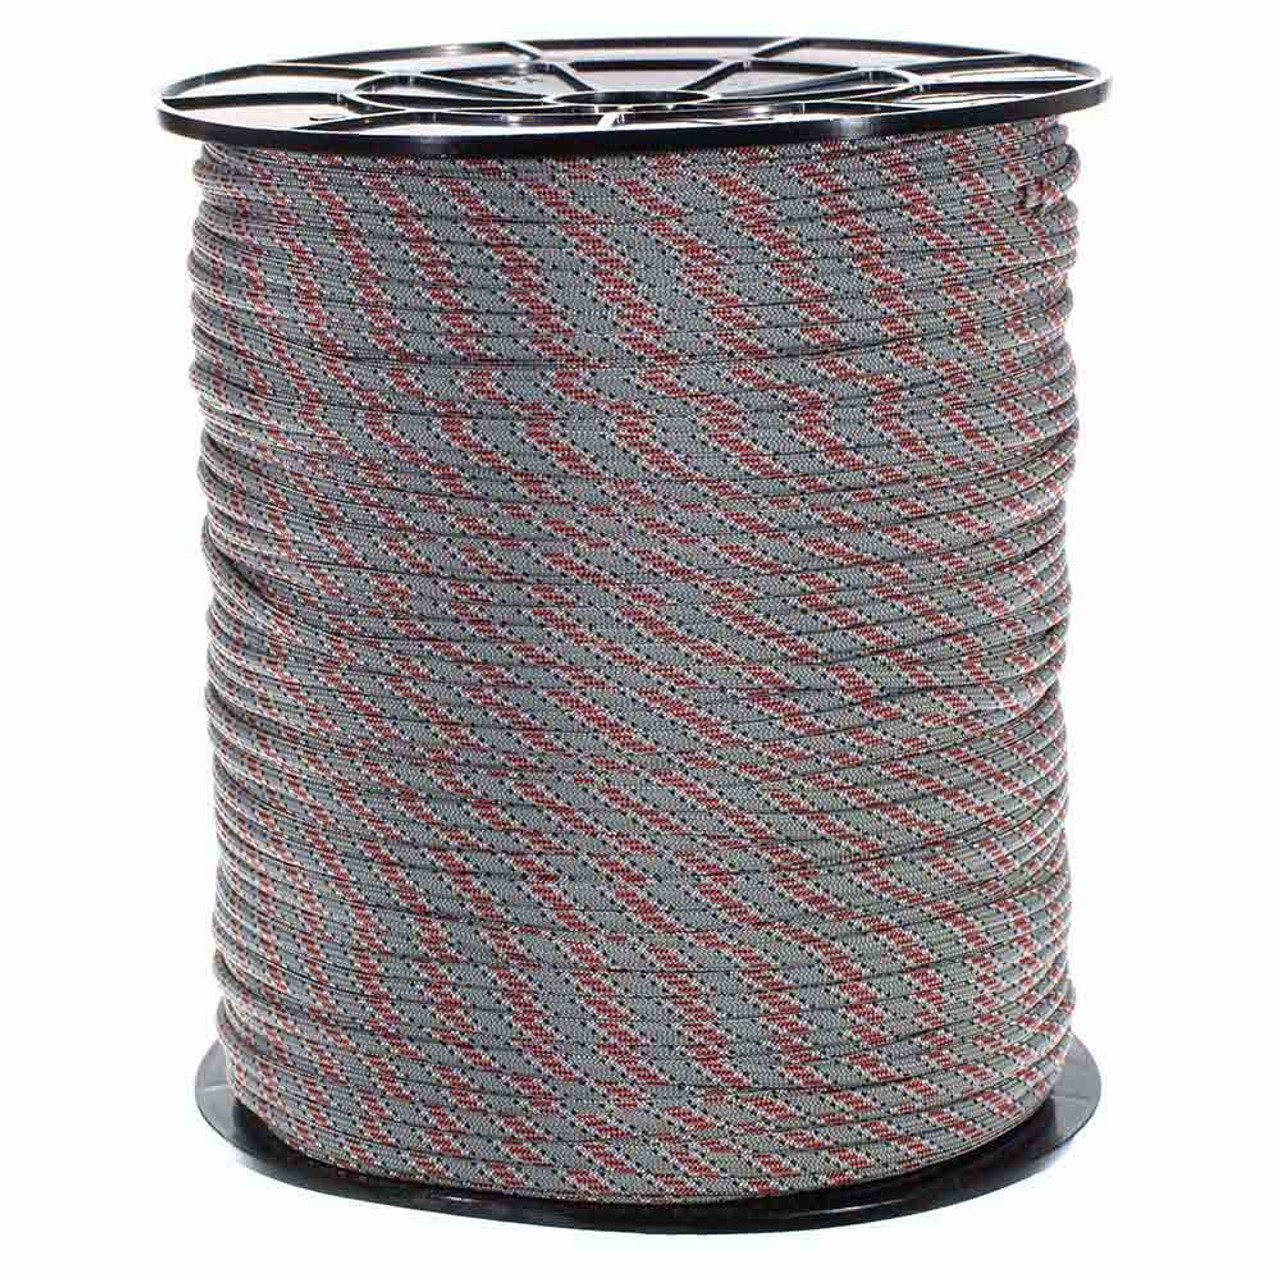 550 Paracord Rope 7 strand Parachute Cord 1000 Foot Spool Lithium